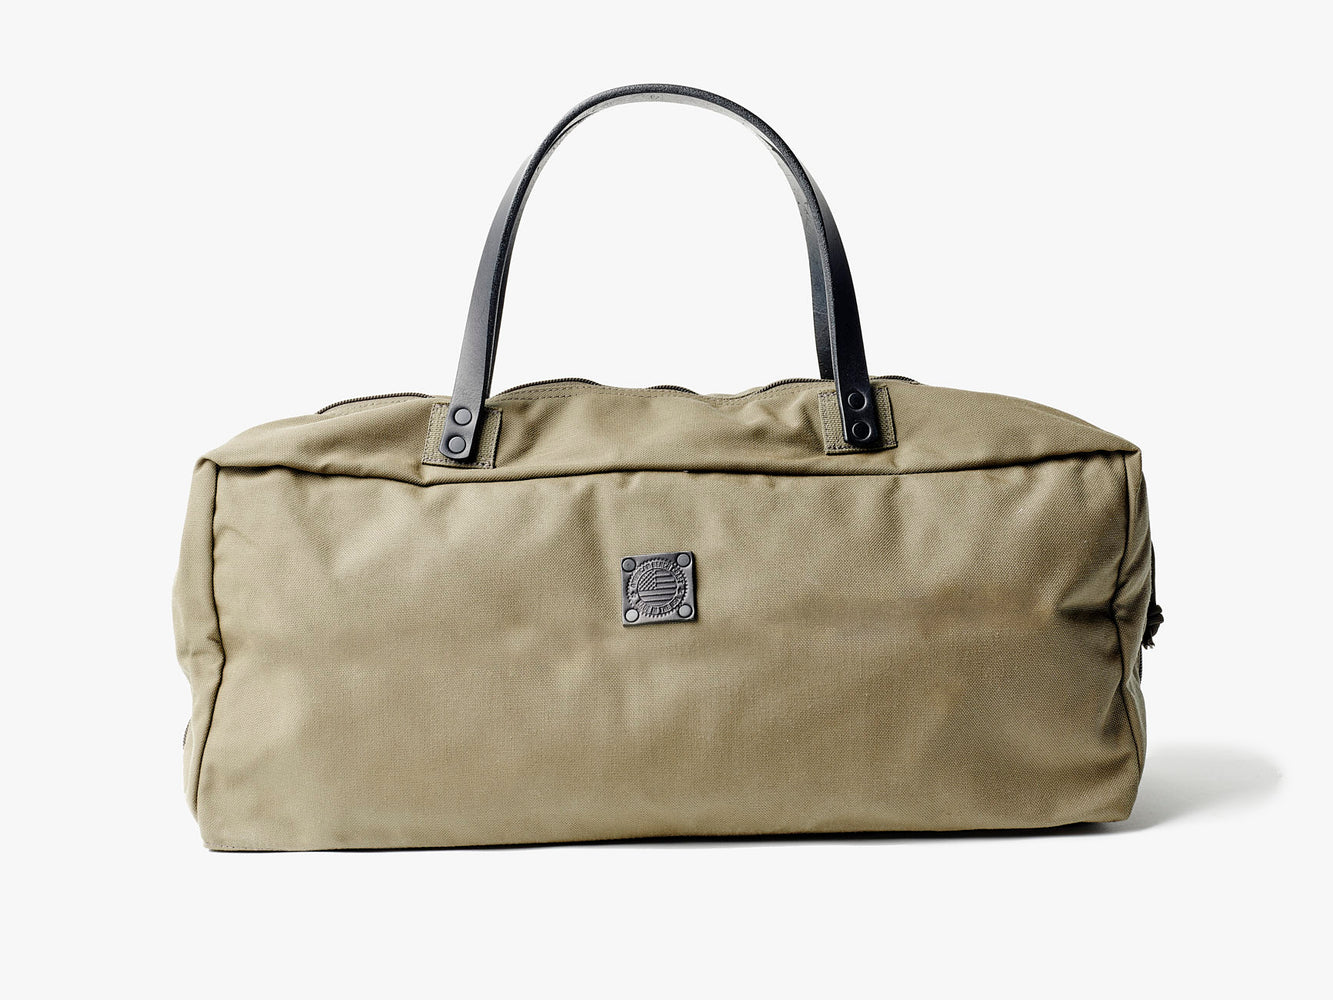 American Bench Craft Rescued Army Surplus Duffel Bag